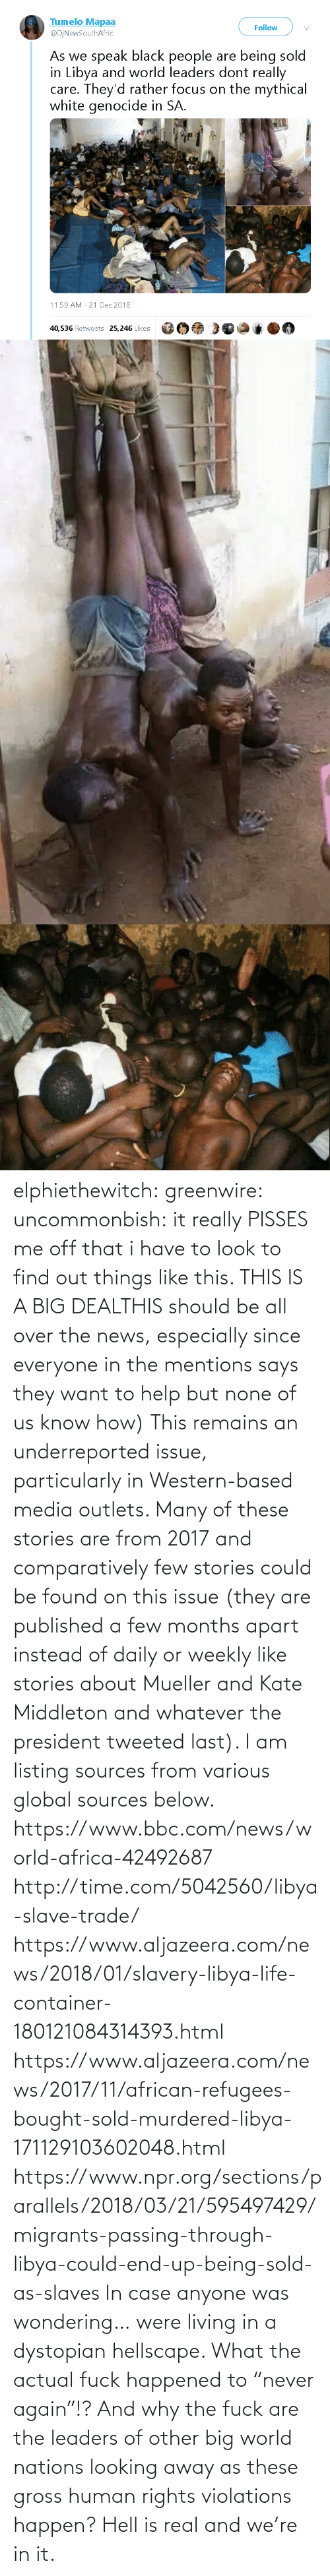 "Should: elphiethewitch: greenwire:  uncommonbish:  it really PISSES me off that i have to look to find out things like this. THIS IS A BIG DEALTHIS should be all over the news, especially since everyone in the mentions says they want to help but none of us know how)  This remains an underreported issue, particularly in Western-based media outlets. Many of these stories are from 2017 and comparatively few stories could be found on this issue (they are published a few months apart instead of daily or weekly like stories about Mueller and Kate Middleton and whatever the president tweeted last). I am listing sources from various global sources below.  https://www.bbc.com/news/world-africa-42492687 http://time.com/5042560/libya-slave-trade/ https://www.aljazeera.com/news/2018/01/slavery-libya-life-container-180121084314393.html https://www.aljazeera.com/news/2017/11/african-refugees-bought-sold-murdered-libya-171129103602048.html https://www.npr.org/sections/parallels/2018/03/21/595497429/migrants-passing-through-libya-could-end-up-being-sold-as-slaves   In case anyone was wondering… were living in a dystopian hellscape.  What the actual fuck happened to ""never again""!? And why the fuck are the leaders of other big world nations looking away as these gross human rights violations happen?  Hell is real and we're in it."